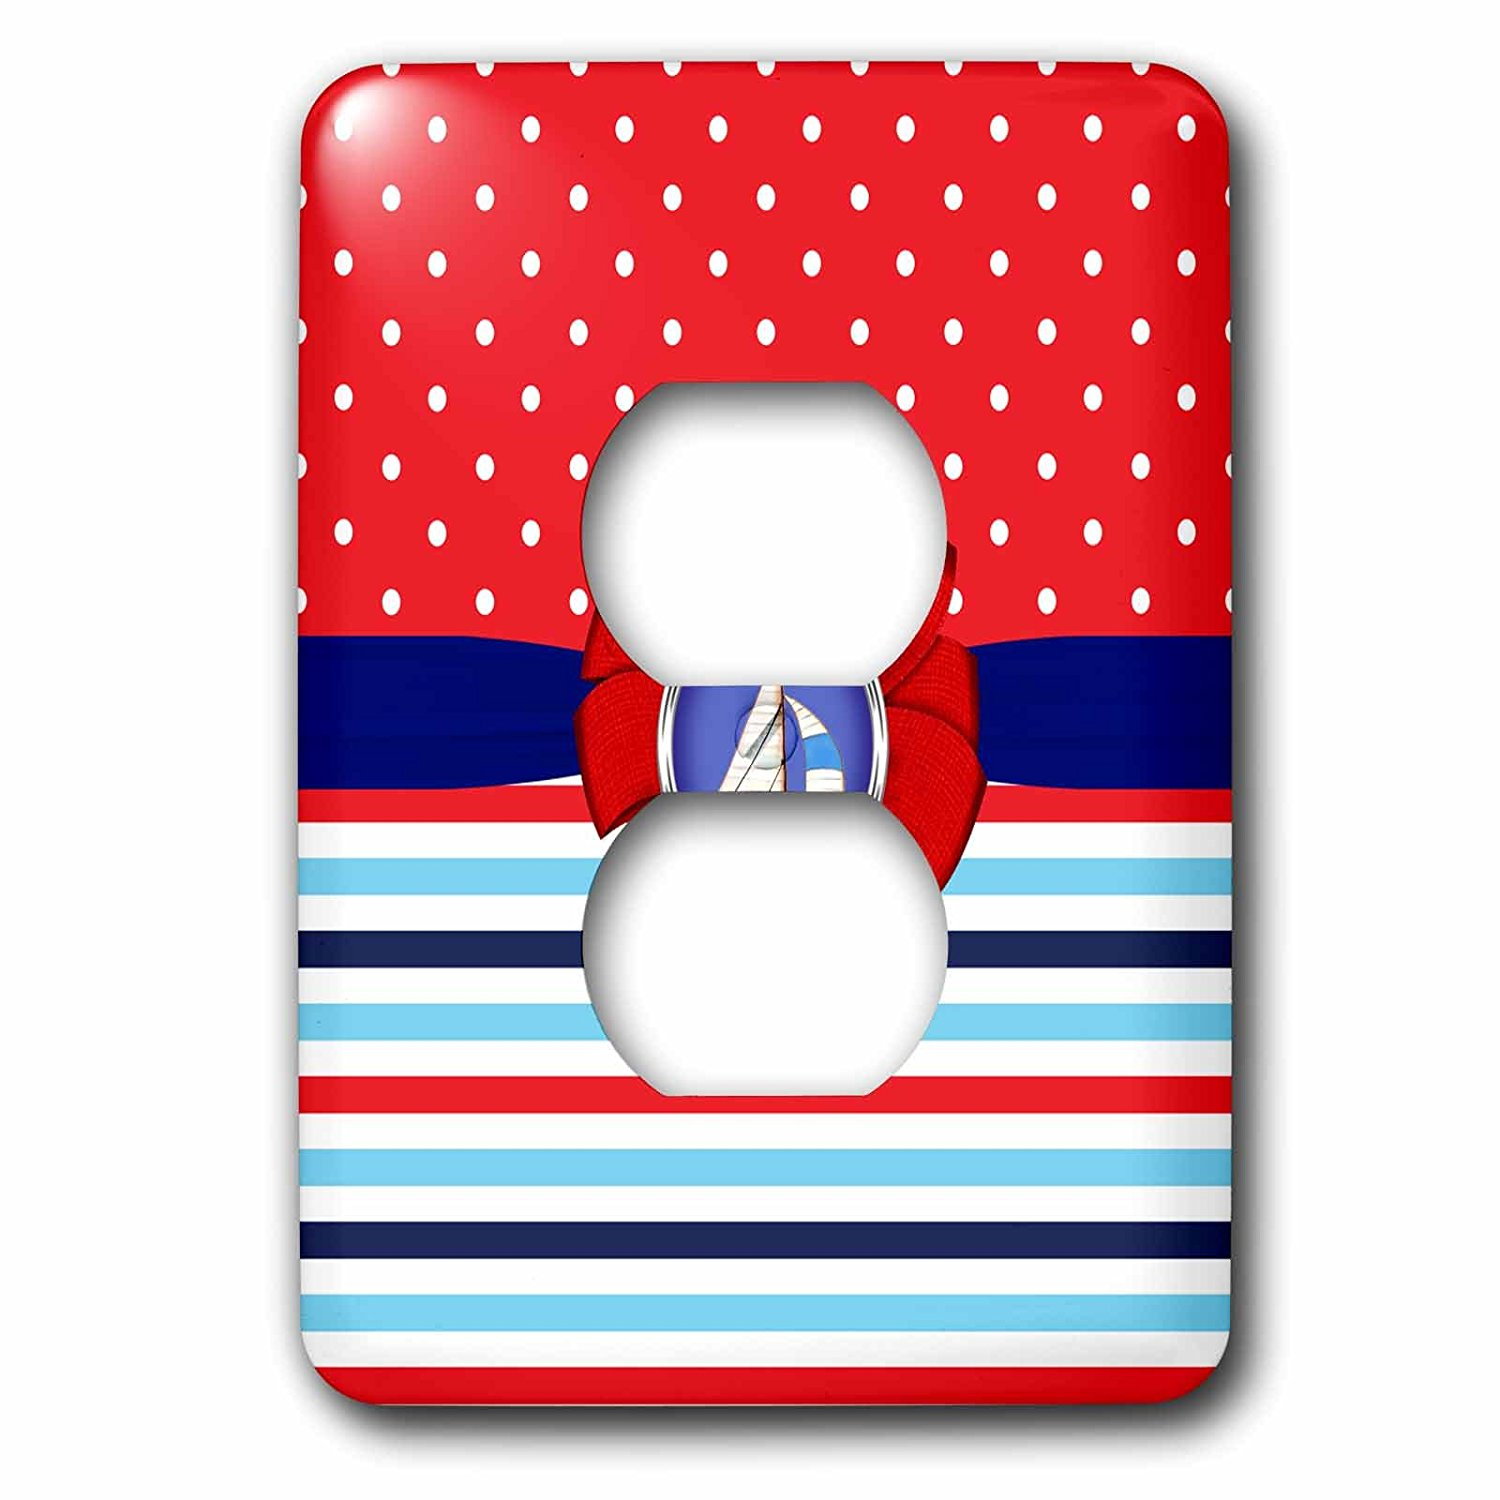 3dRose Anne Marie Baugh - Patterns - Cute Red, White, Blue, Polka Dots, Stripes, With Bow and Sail Boat - Light Switch Covers - 2 plug outlet cover (lsp_274148_6)